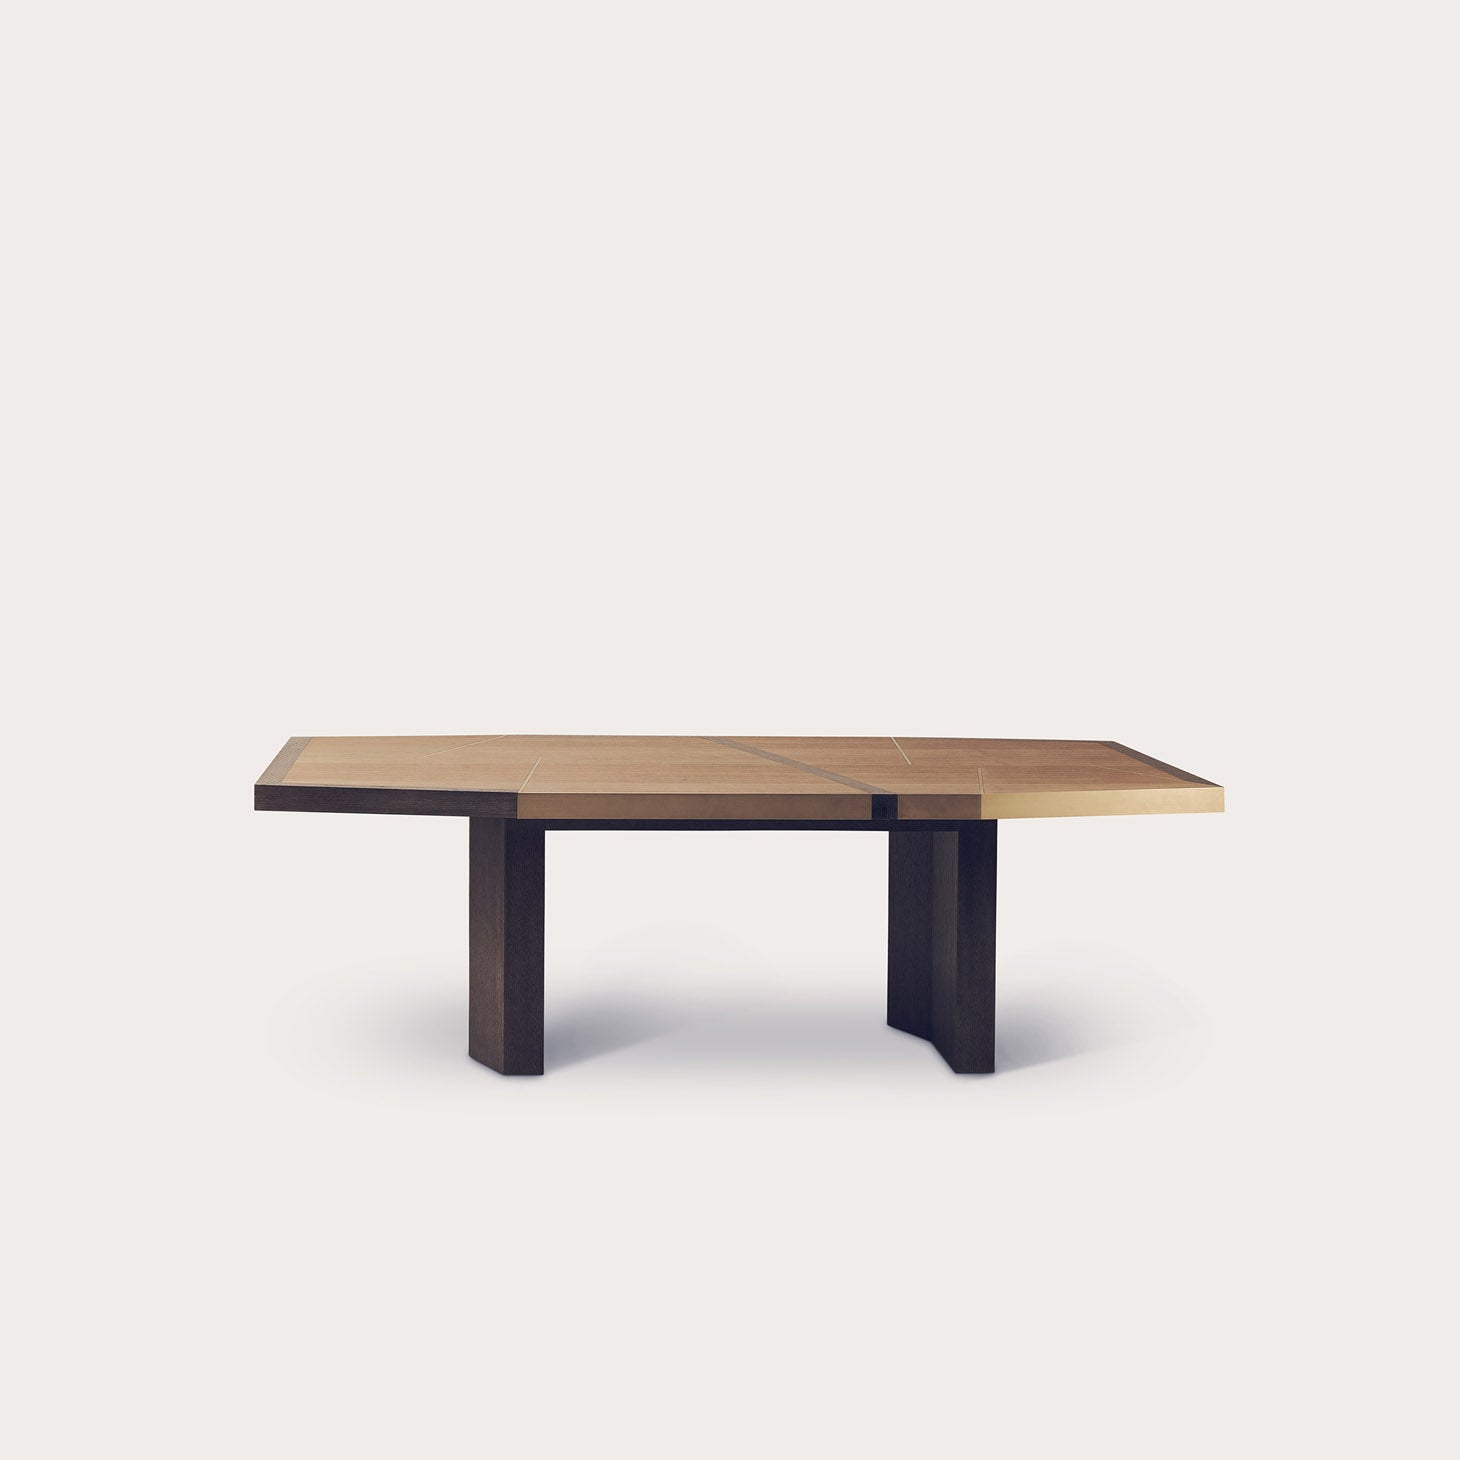 DINANT Dining Table Tables Bruno Moinard Designer Furniture Sku: 773-230-10038